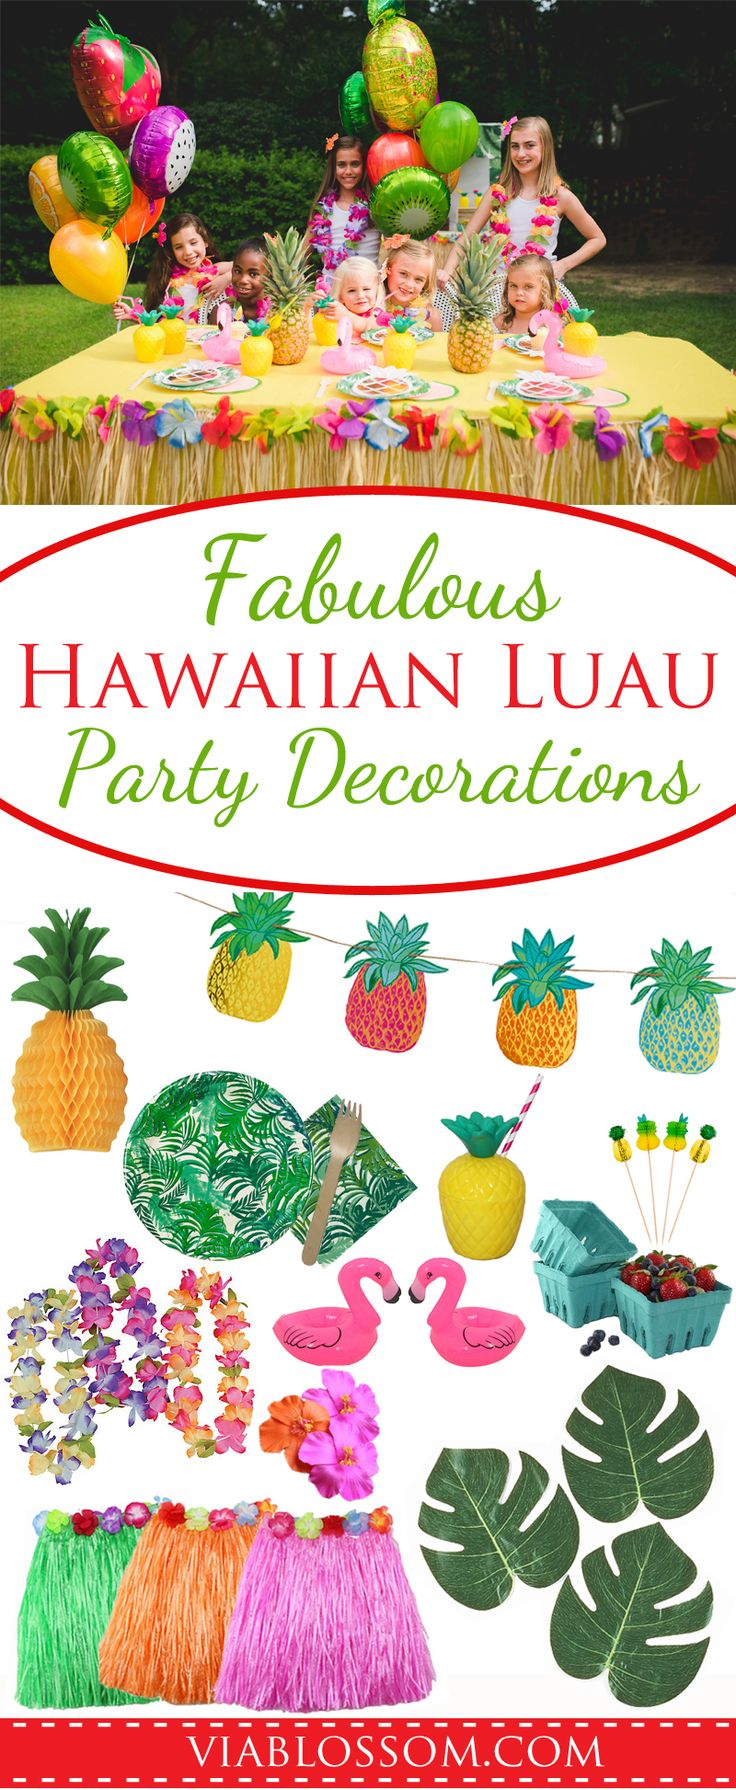 Fabulous Hawaiian Luau Party Decorations and ideas for the best Summer Party ever or a Moana Party!